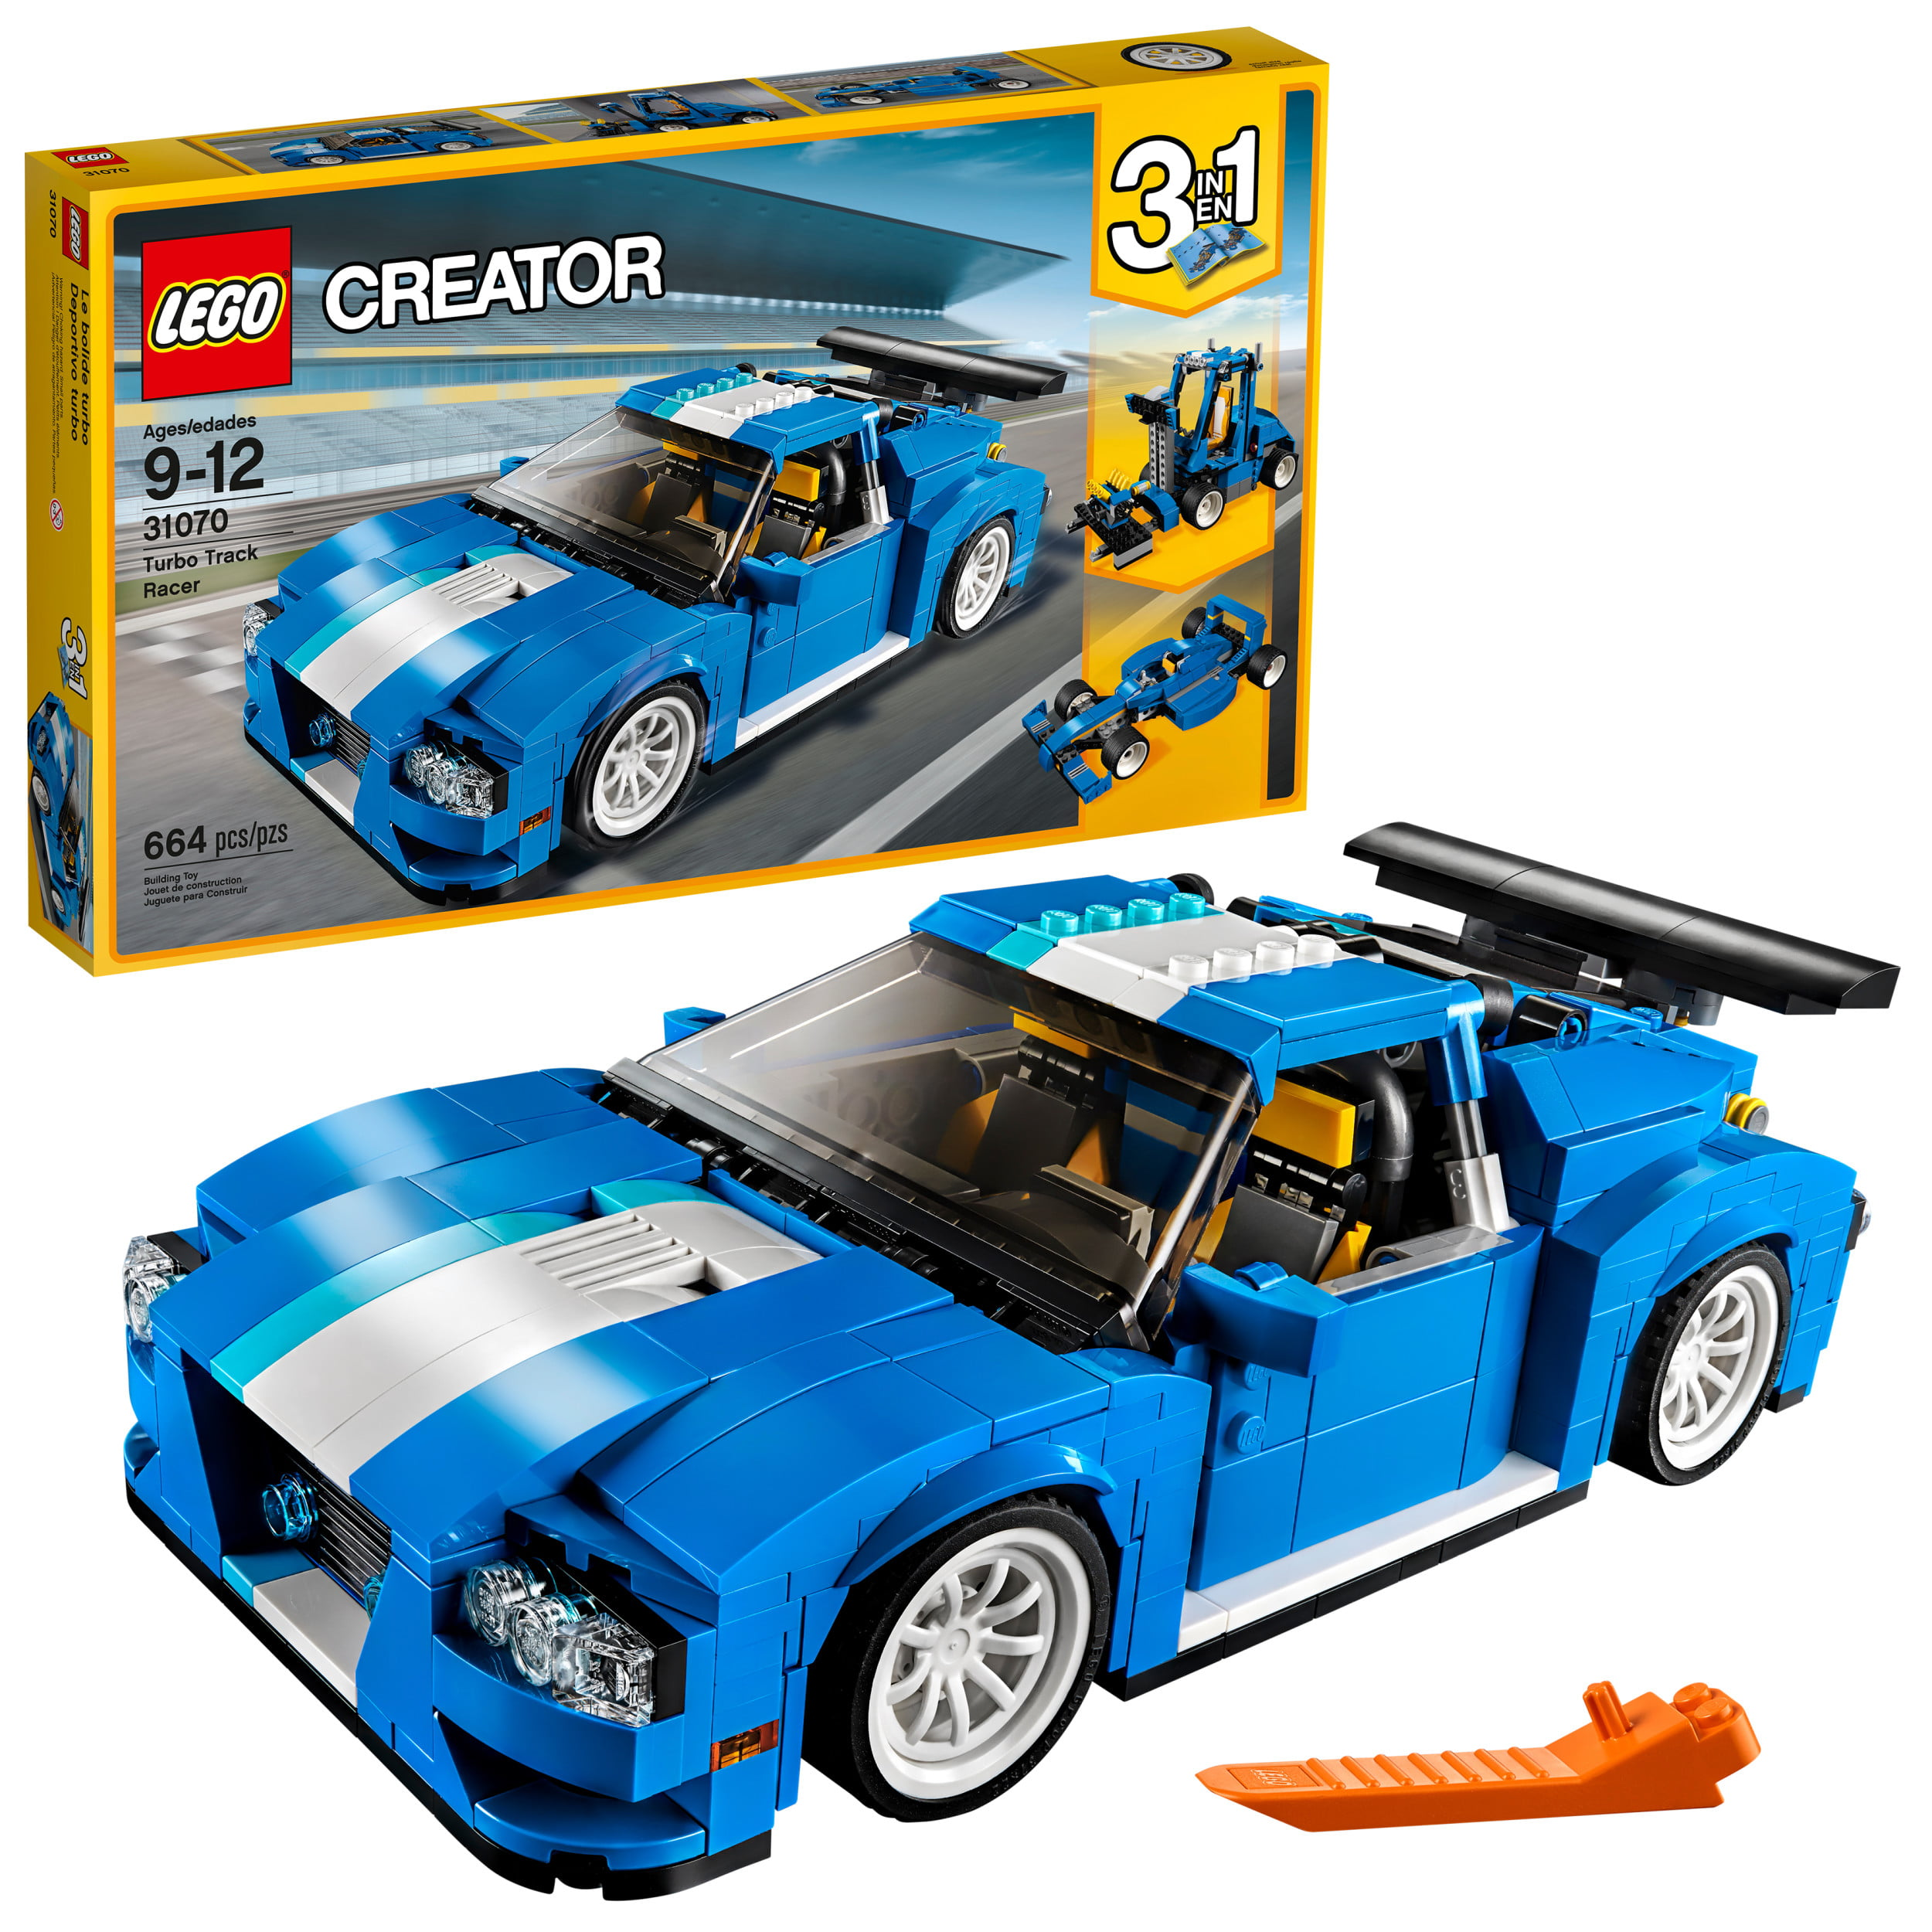 Creator Racer Track Lego 31070 Building Set664 Turbo Pieces KTuFJcl315